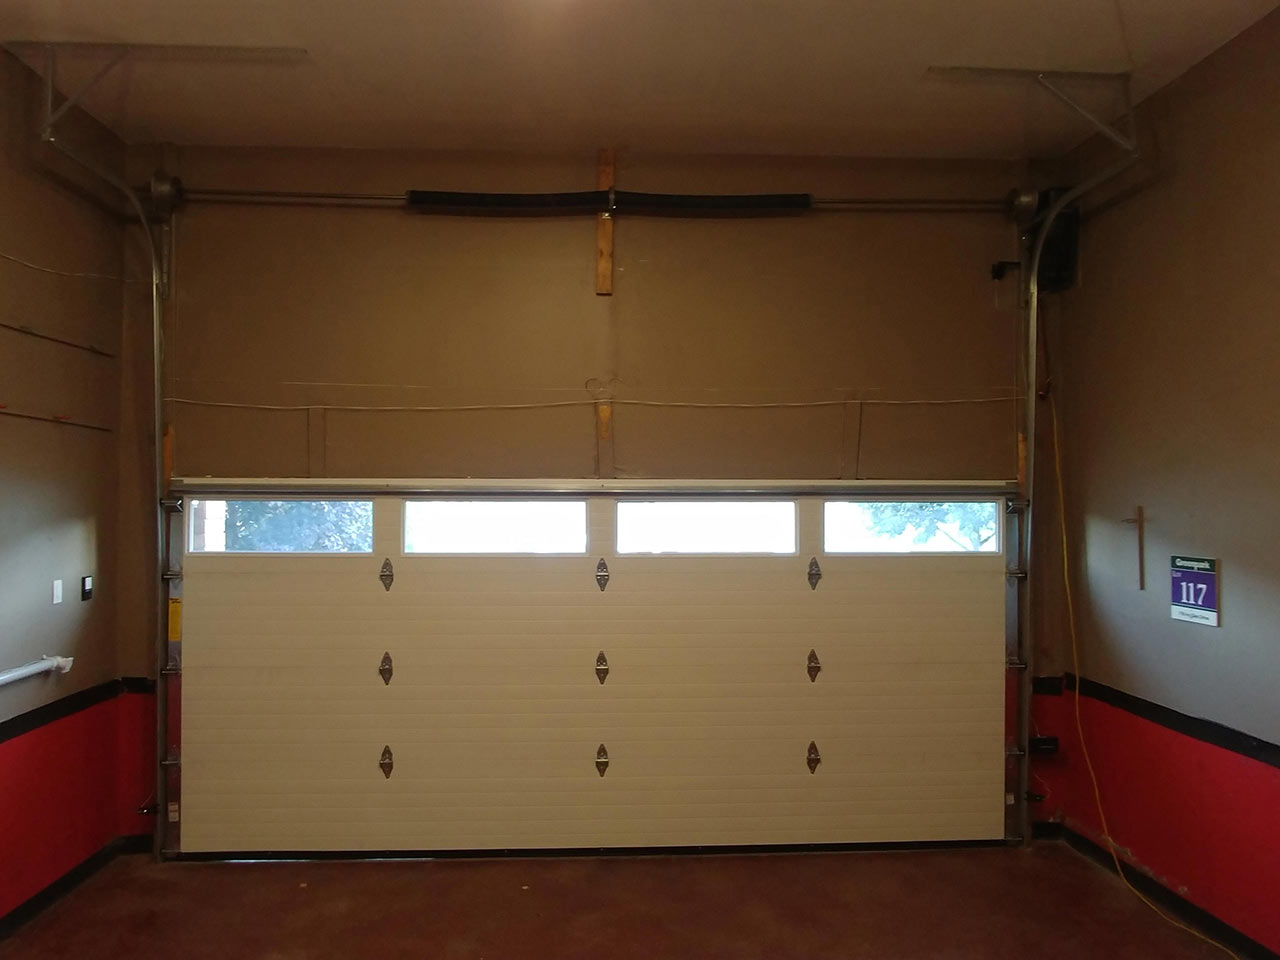 Custom-Lighlift-Tracks-Door-No.1